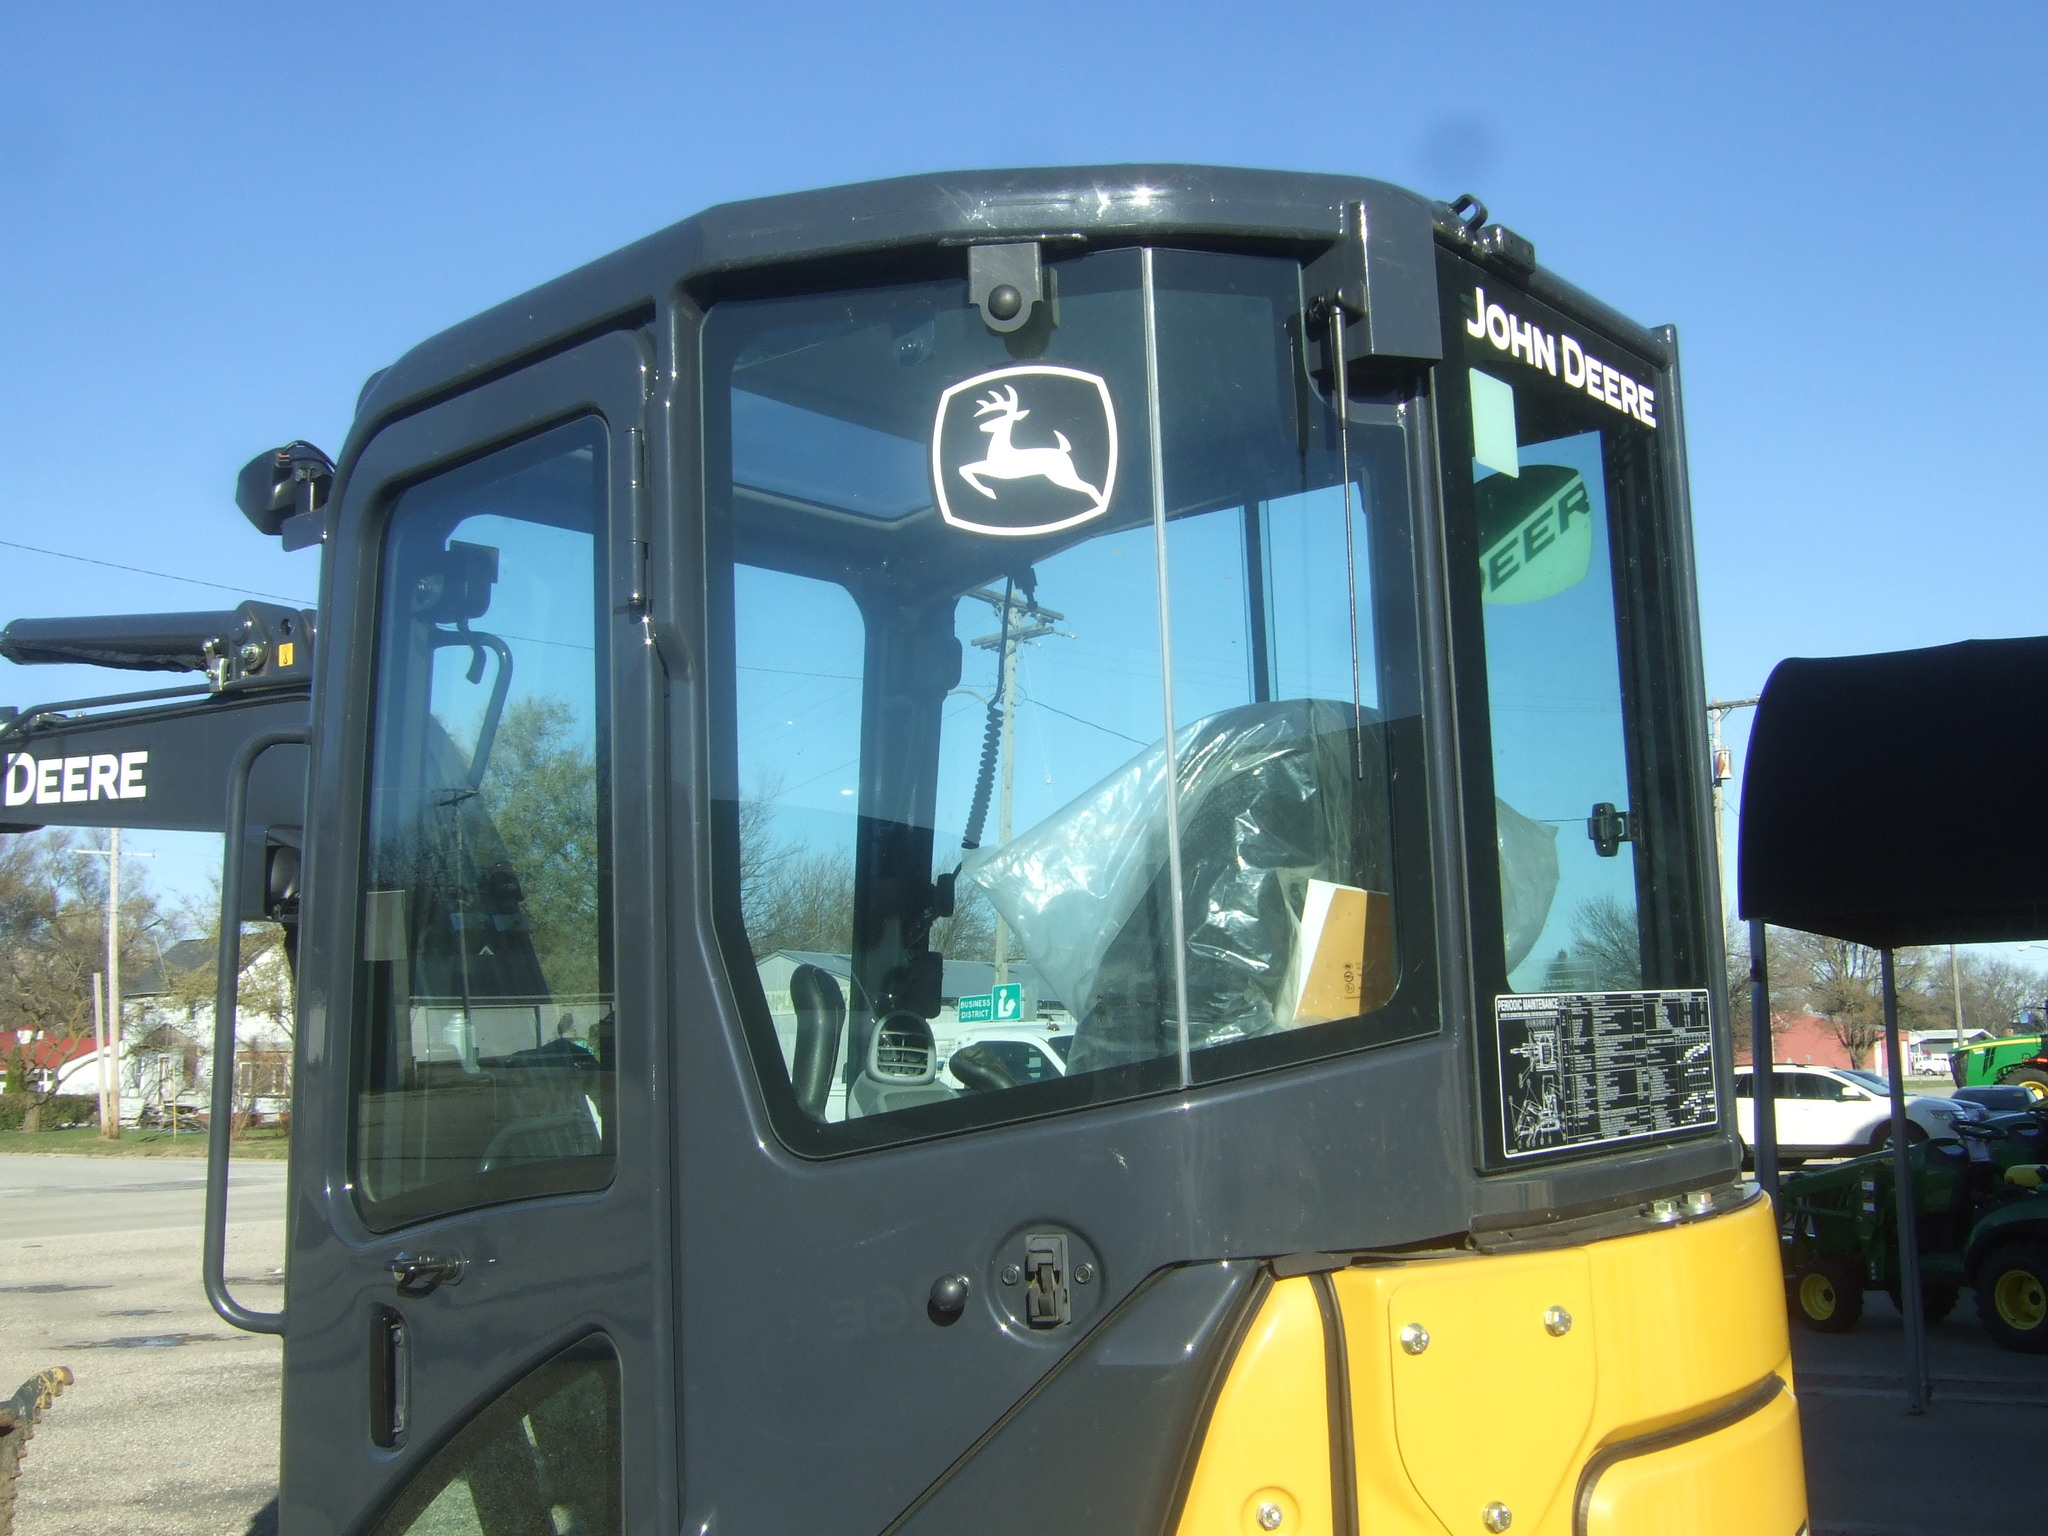 John Deere 35g Compact Excavators For Sale 40633